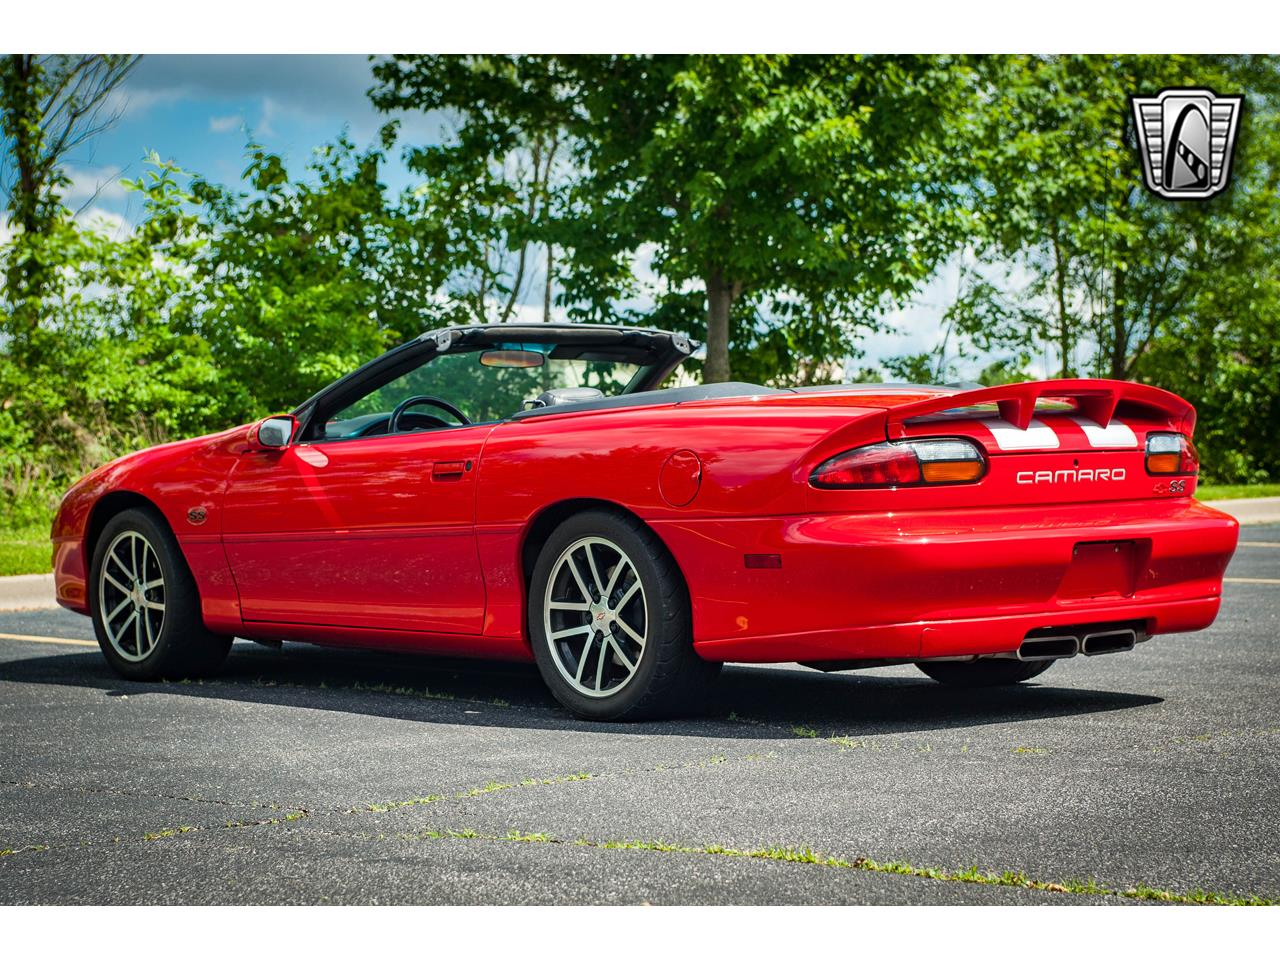 Large Picture of 2002 Chevrolet Camaro located in O'Fallon Illinois - $33,500.00 Offered by Gateway Classic Cars - St. Louis - QB9Z